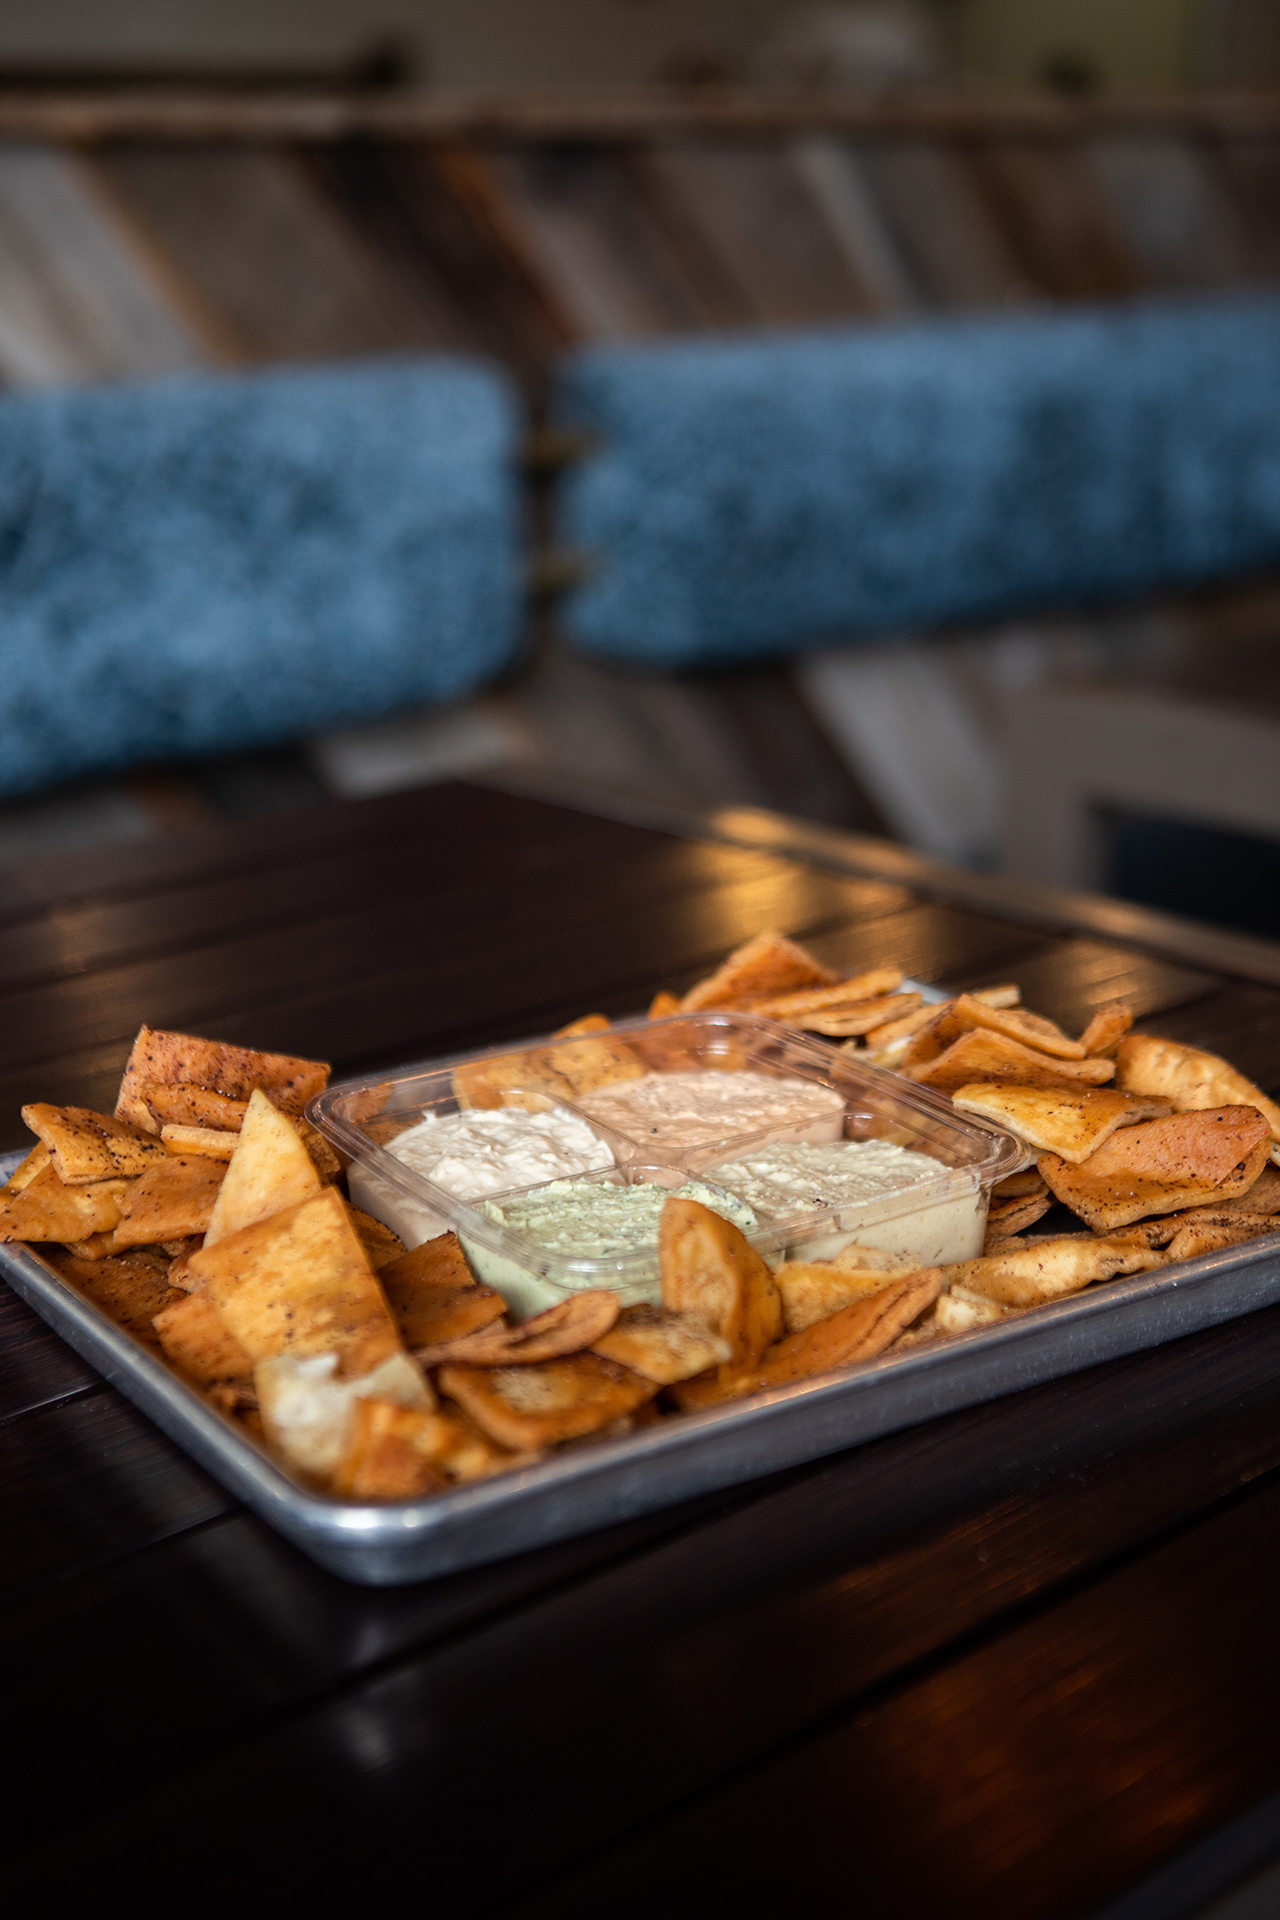 The Party Pack is pictured in a square container with four side orders of our signature Hummus flavors, Classic Hummus, Cilantro Jalapeño Hummus, Roasted Tomato Habanero Hummus, and Cumin Lime Hummus. The Party Pack container is centered on a large rectangular metallic tray and is surrounded by fresh fried pita chips. The tray is placed on a black metallic table.